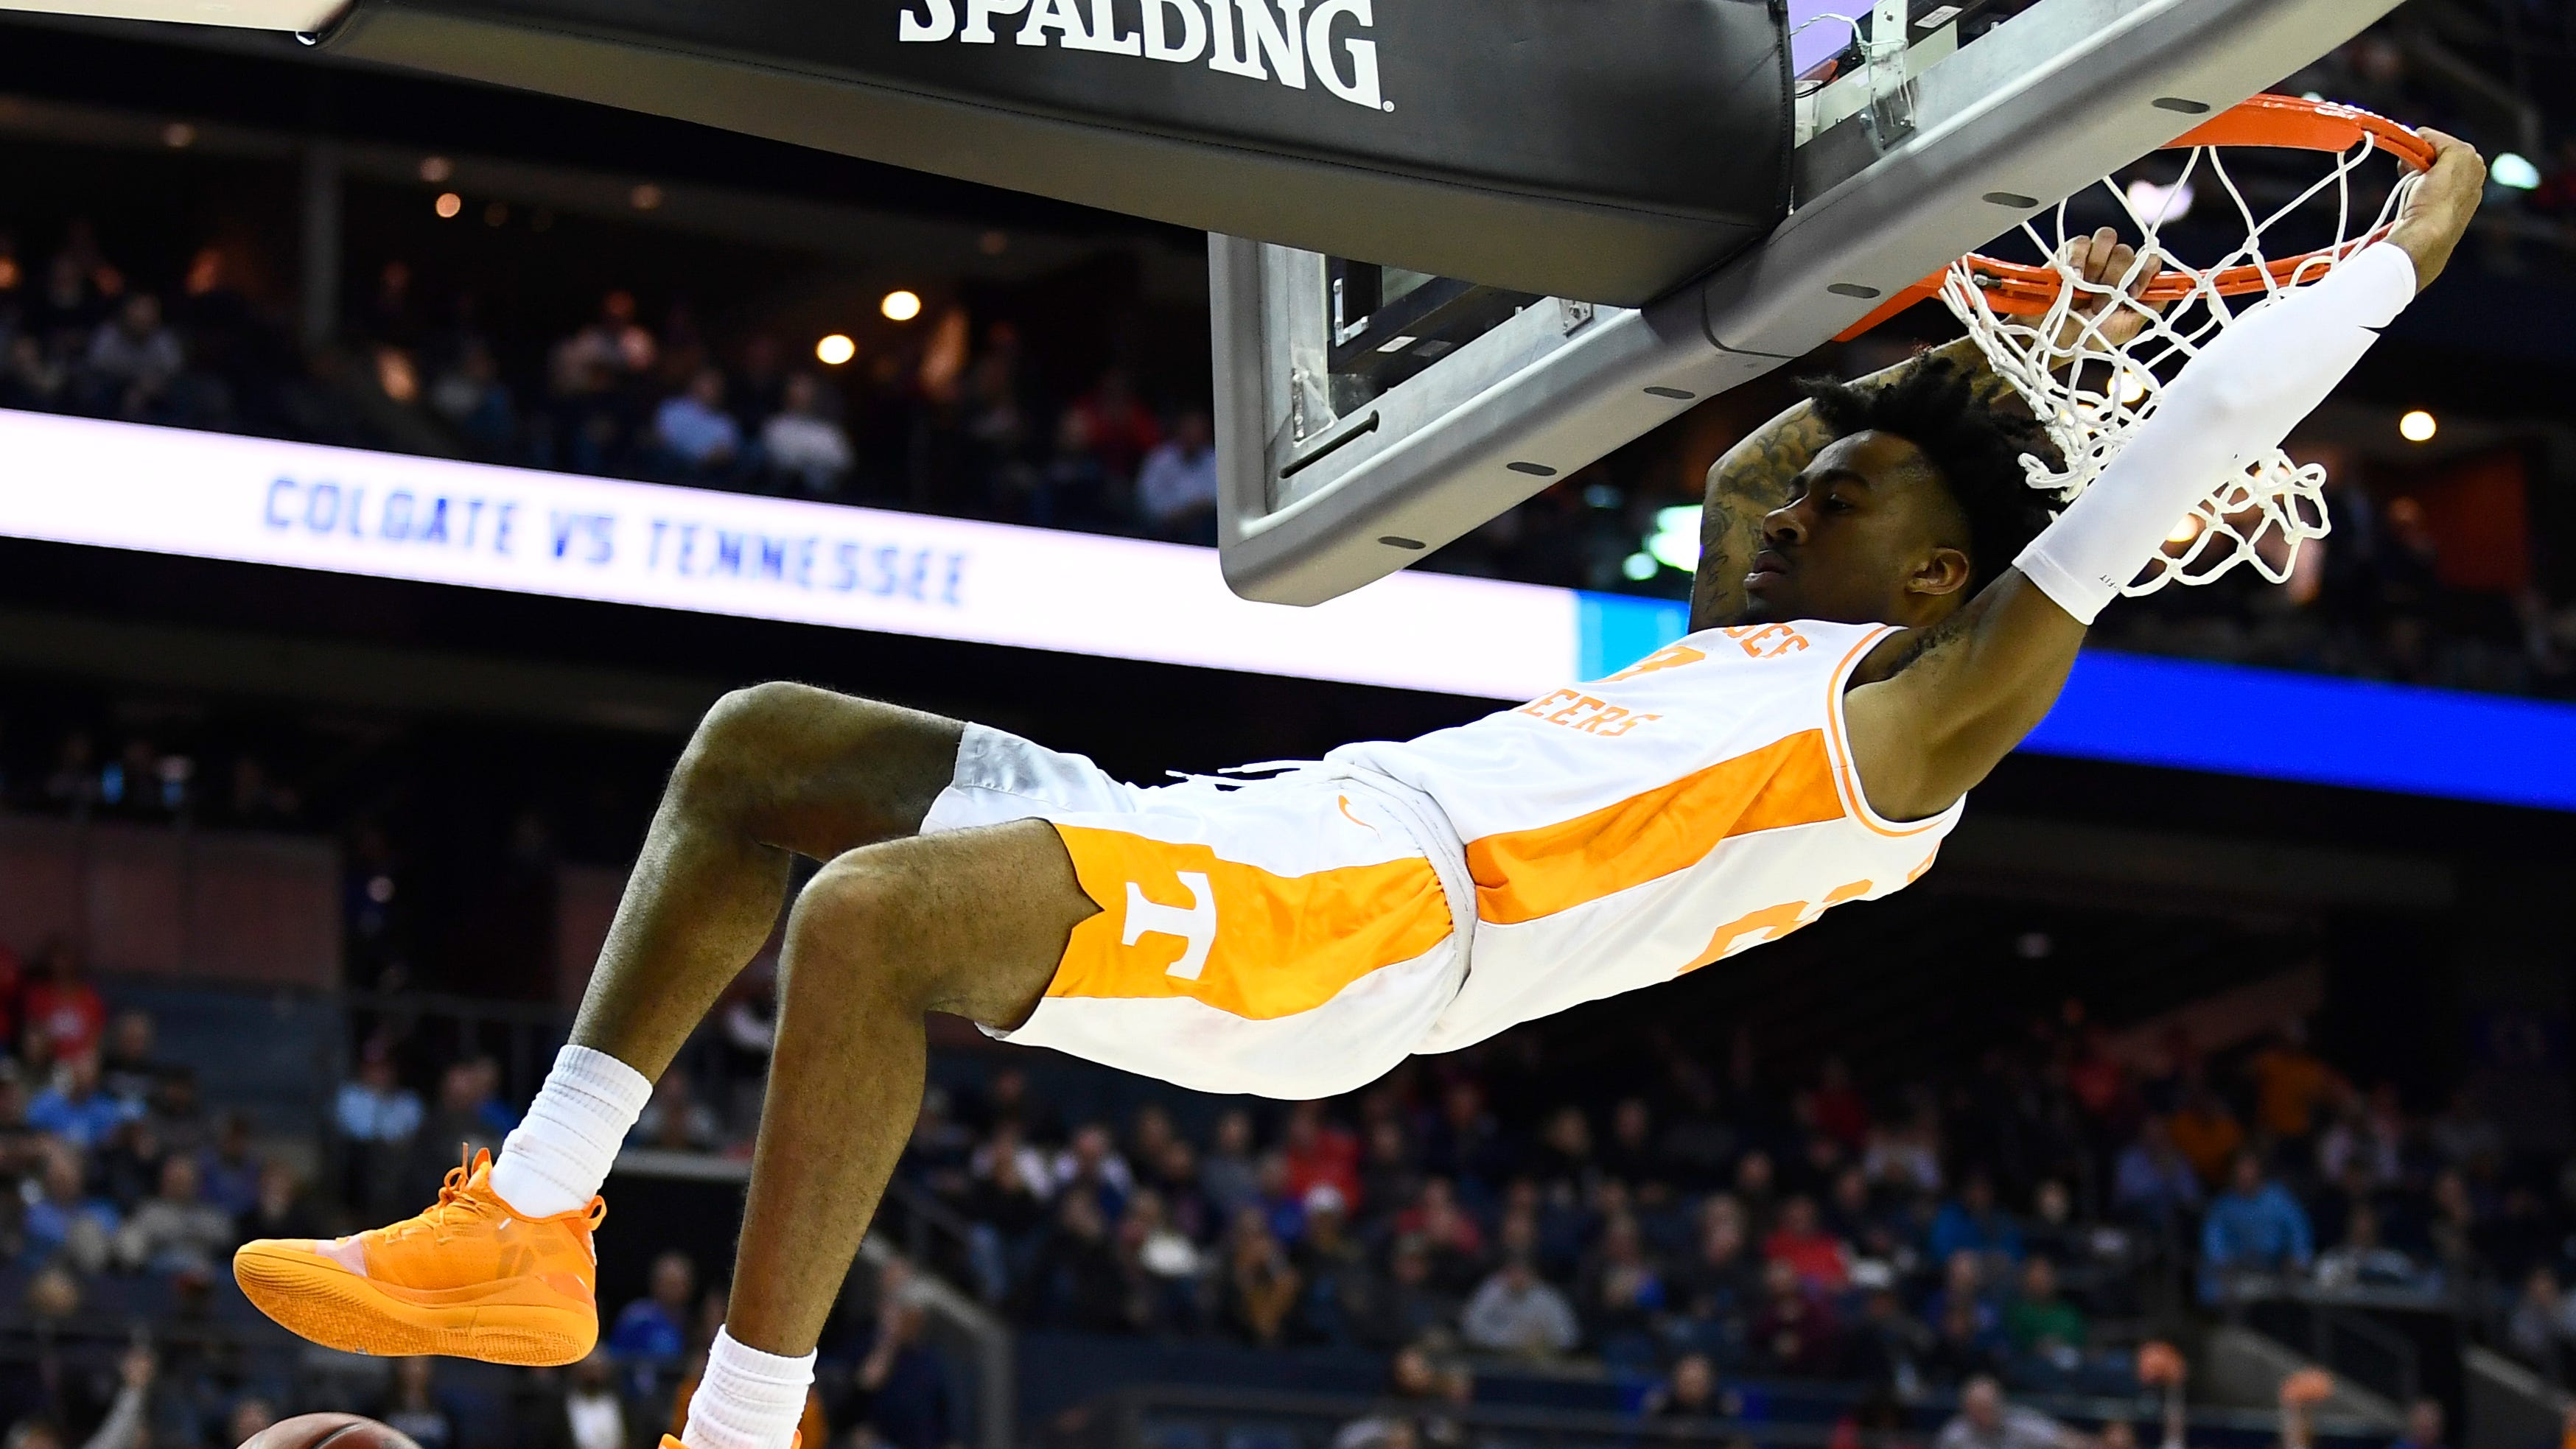 Tennessee guard Jordan Bowden (23) dunks during the game against the Colgate Raiders in the first round of the NCAA Tournament at Nationwide Arena in Columbus, Ohio, on Friday, March 22, 2019.